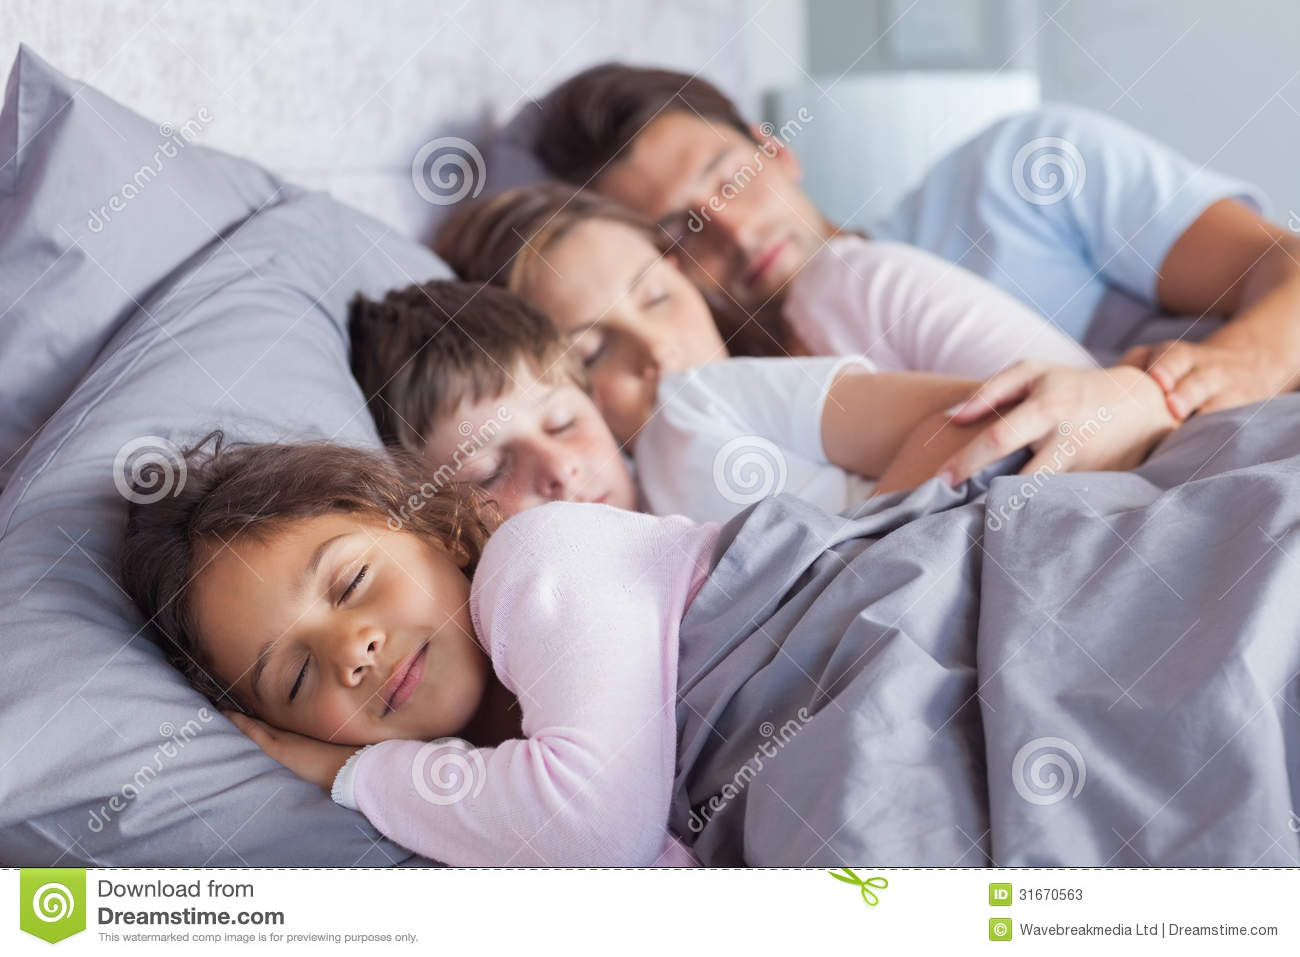 Cute family sleeping in bed. Cute Family Sleeping In Bed Stock Image   Image  31670563